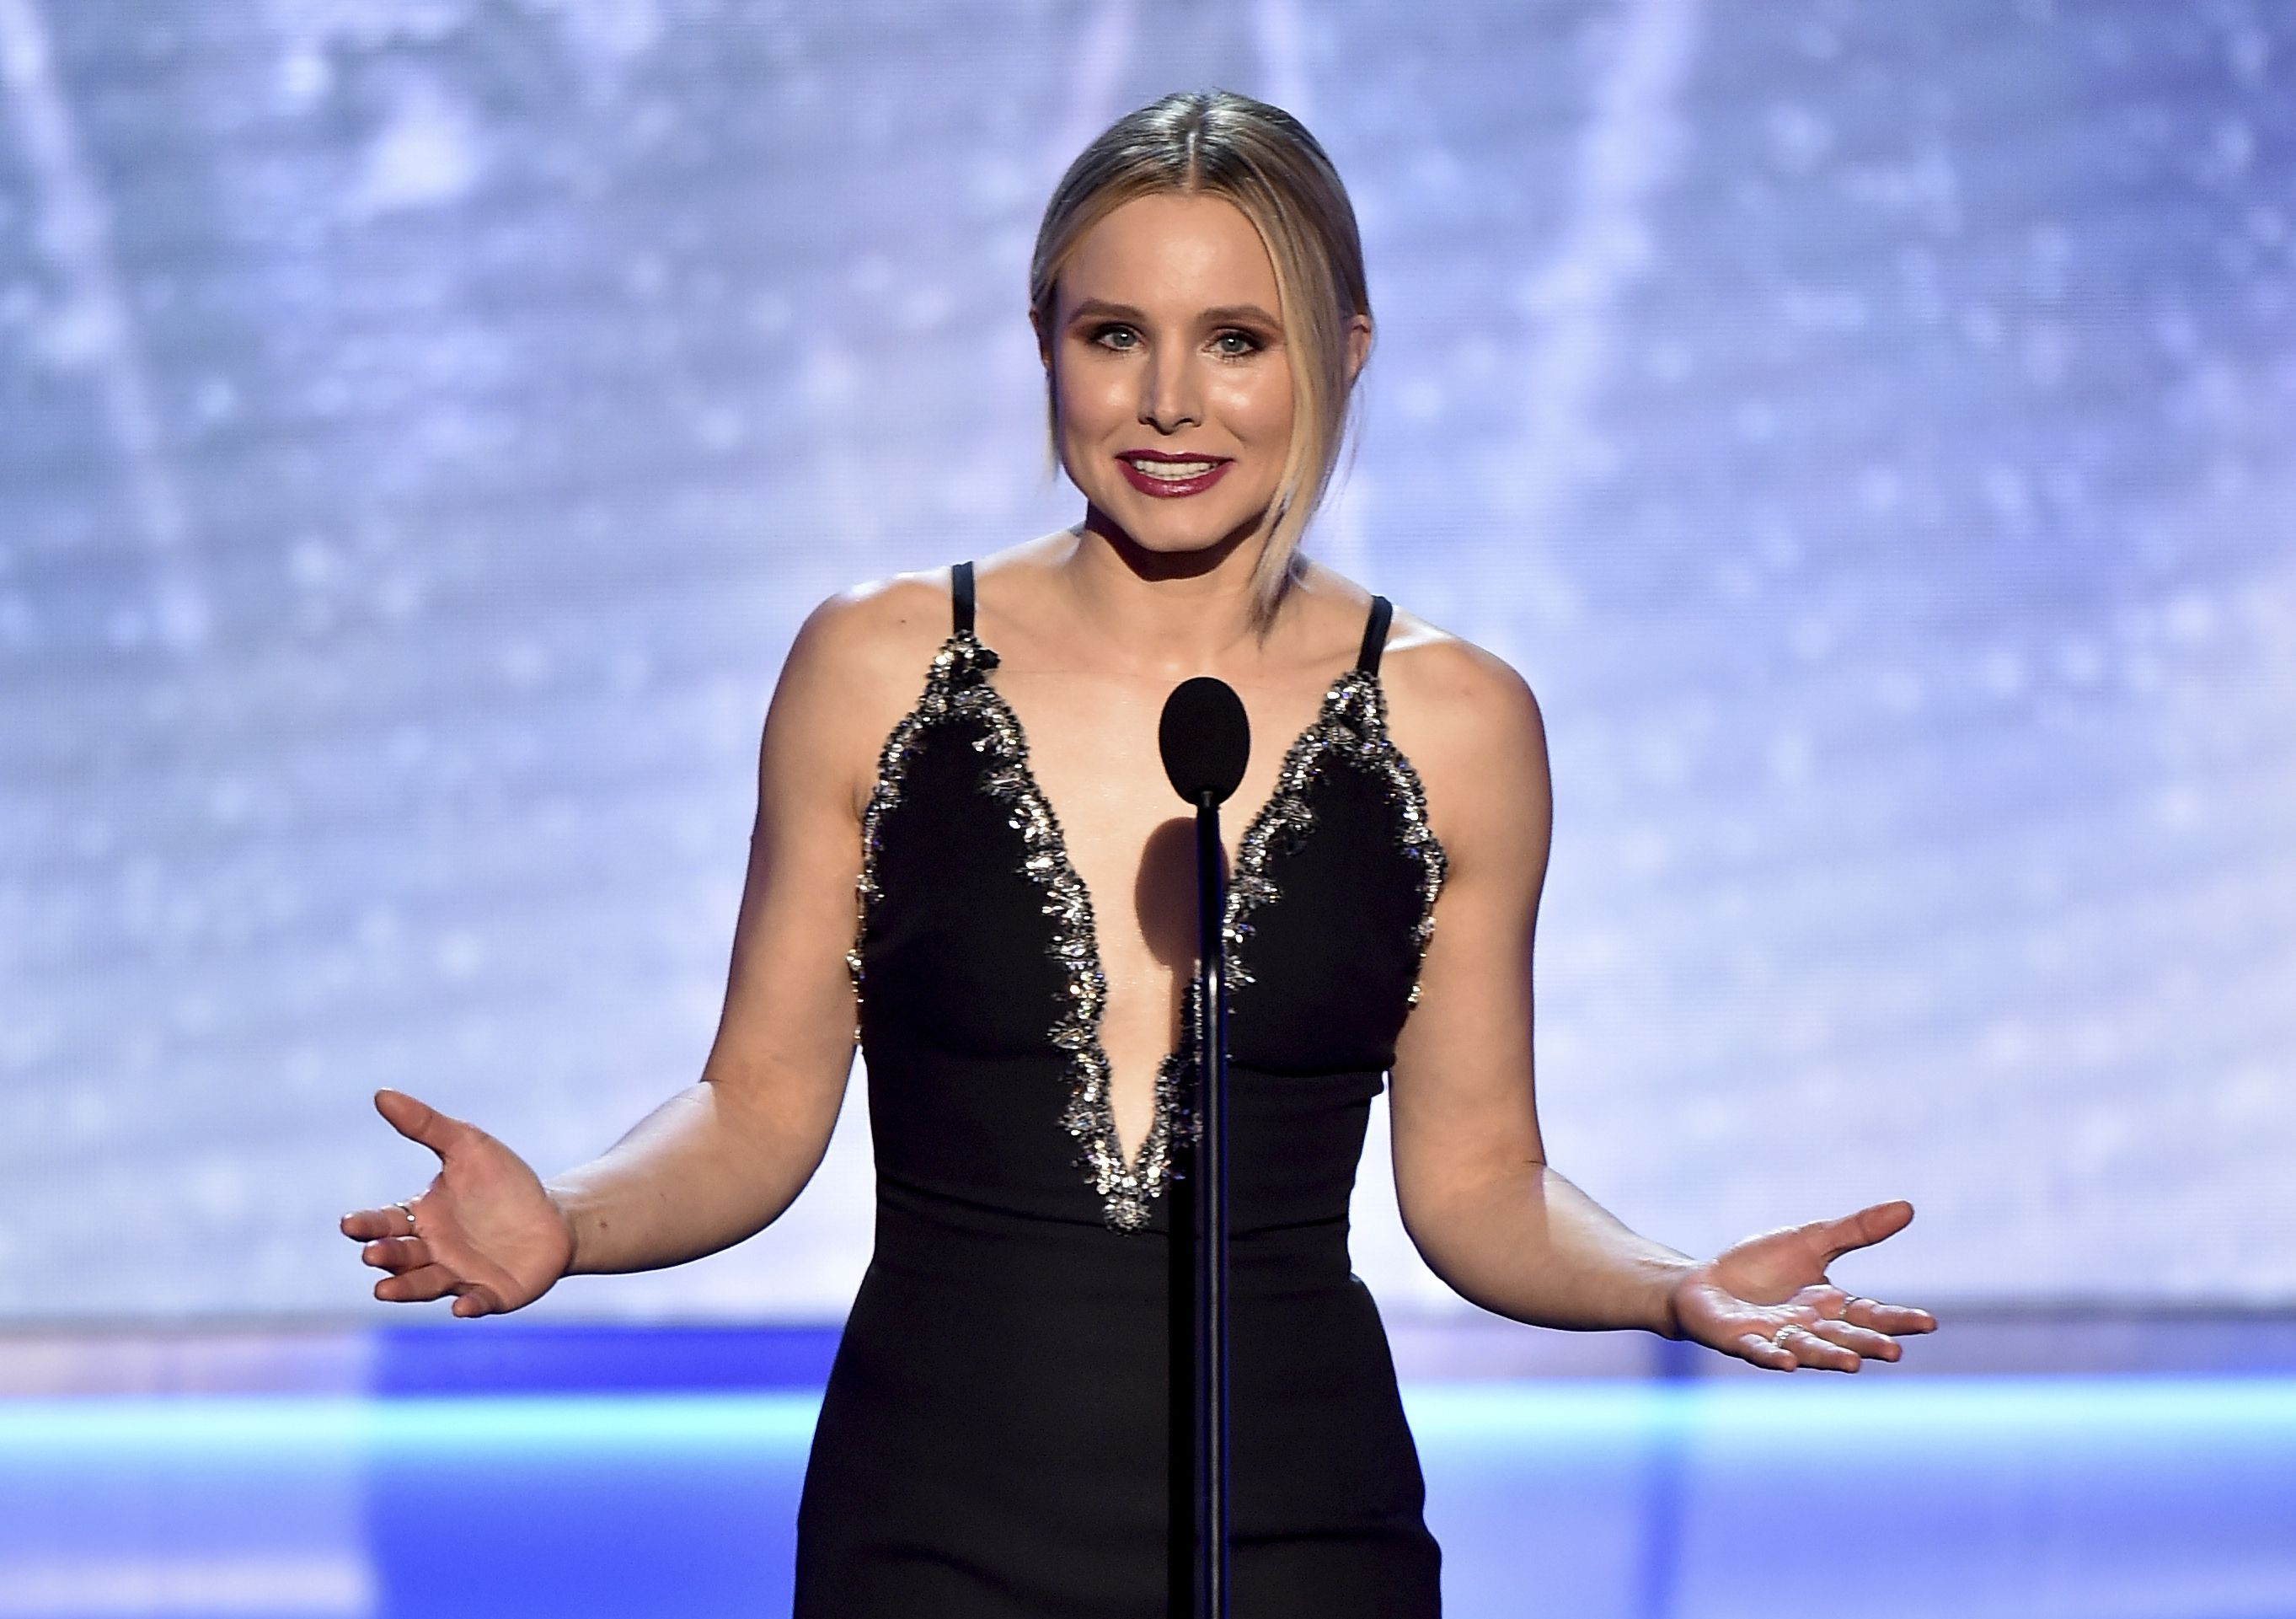 Mandatory Credit: Photo by Vince Bucci/Invision/AP/REX/Shutterstock (9328499c) Host Kristen Bell speaks on stage at the 24th annual Screen Actors Guild Awards at the Shrine Auditorium & Expo Hall, in Los Angeles 24th Annual SAG Awards - Show, Los Angeles, USA - 21 Jan 2018